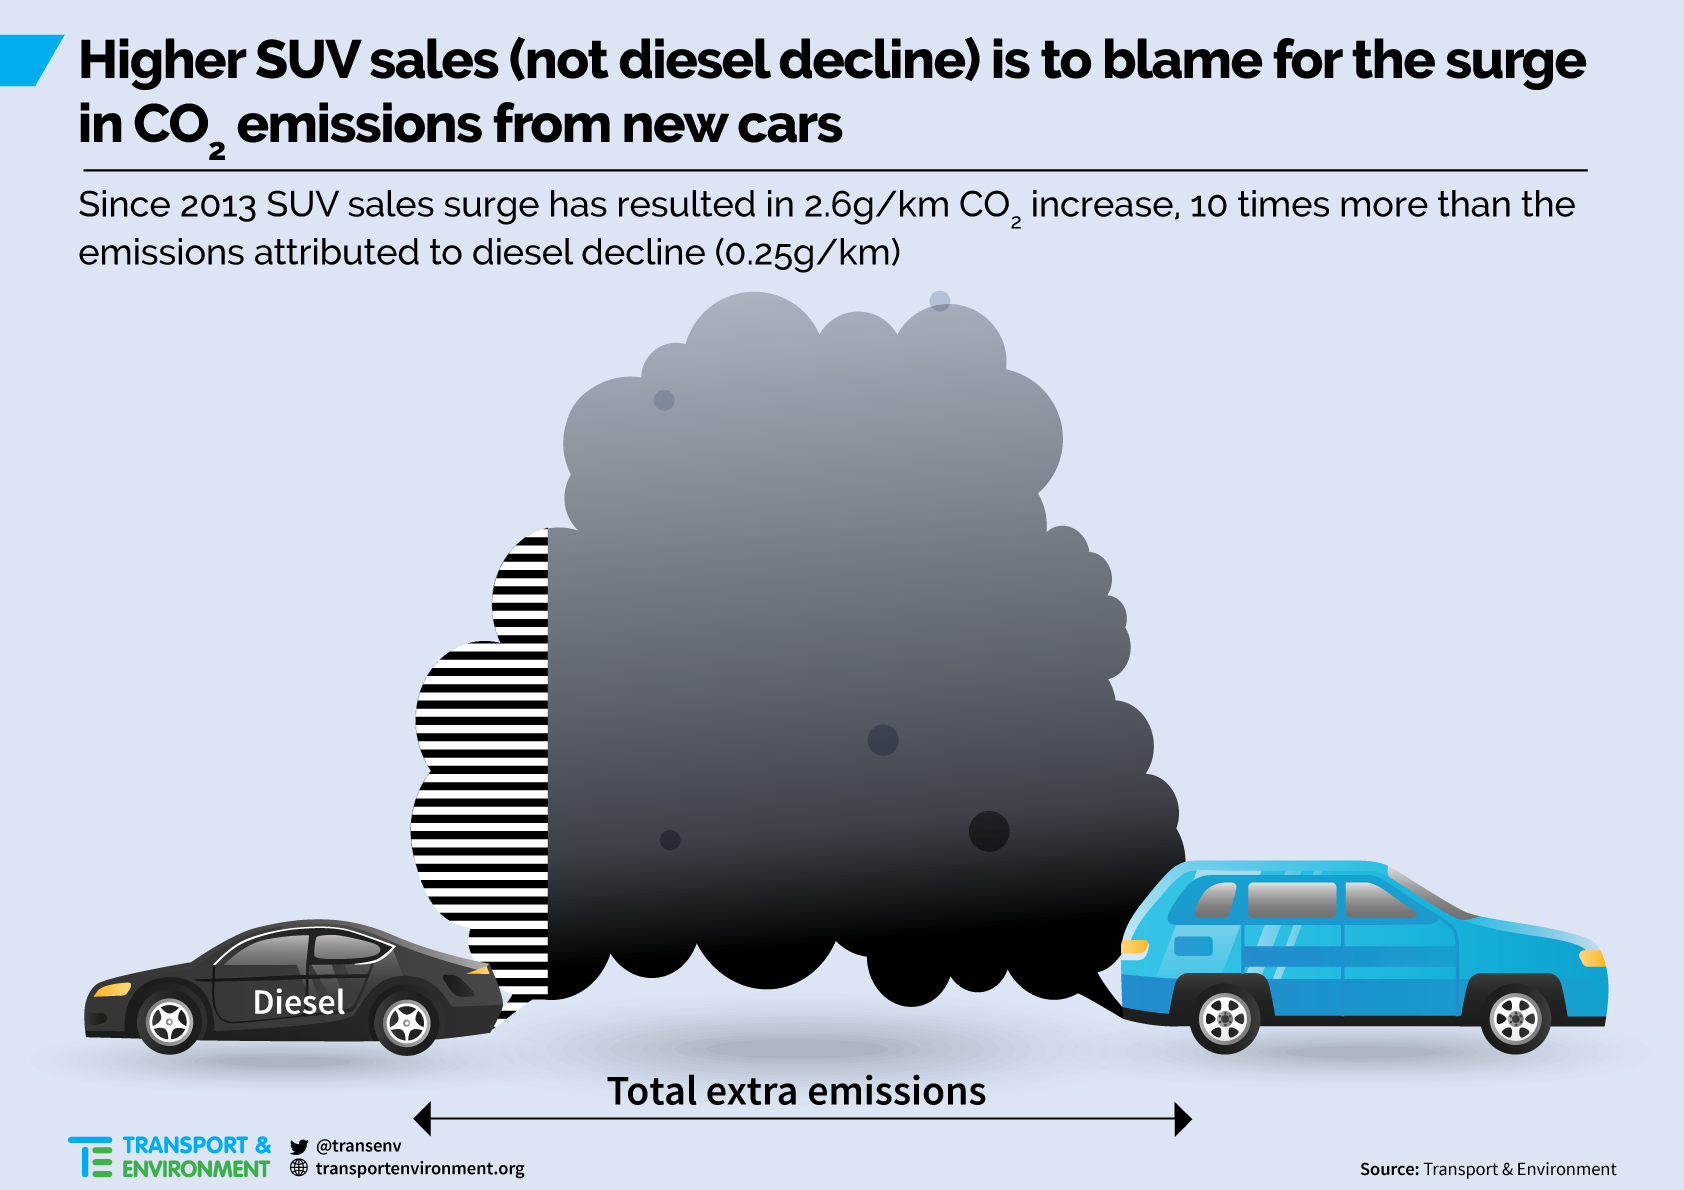 Higher SUV sales, not diesel decline, to blame for rise in CO2 emissions from new cars in Europe